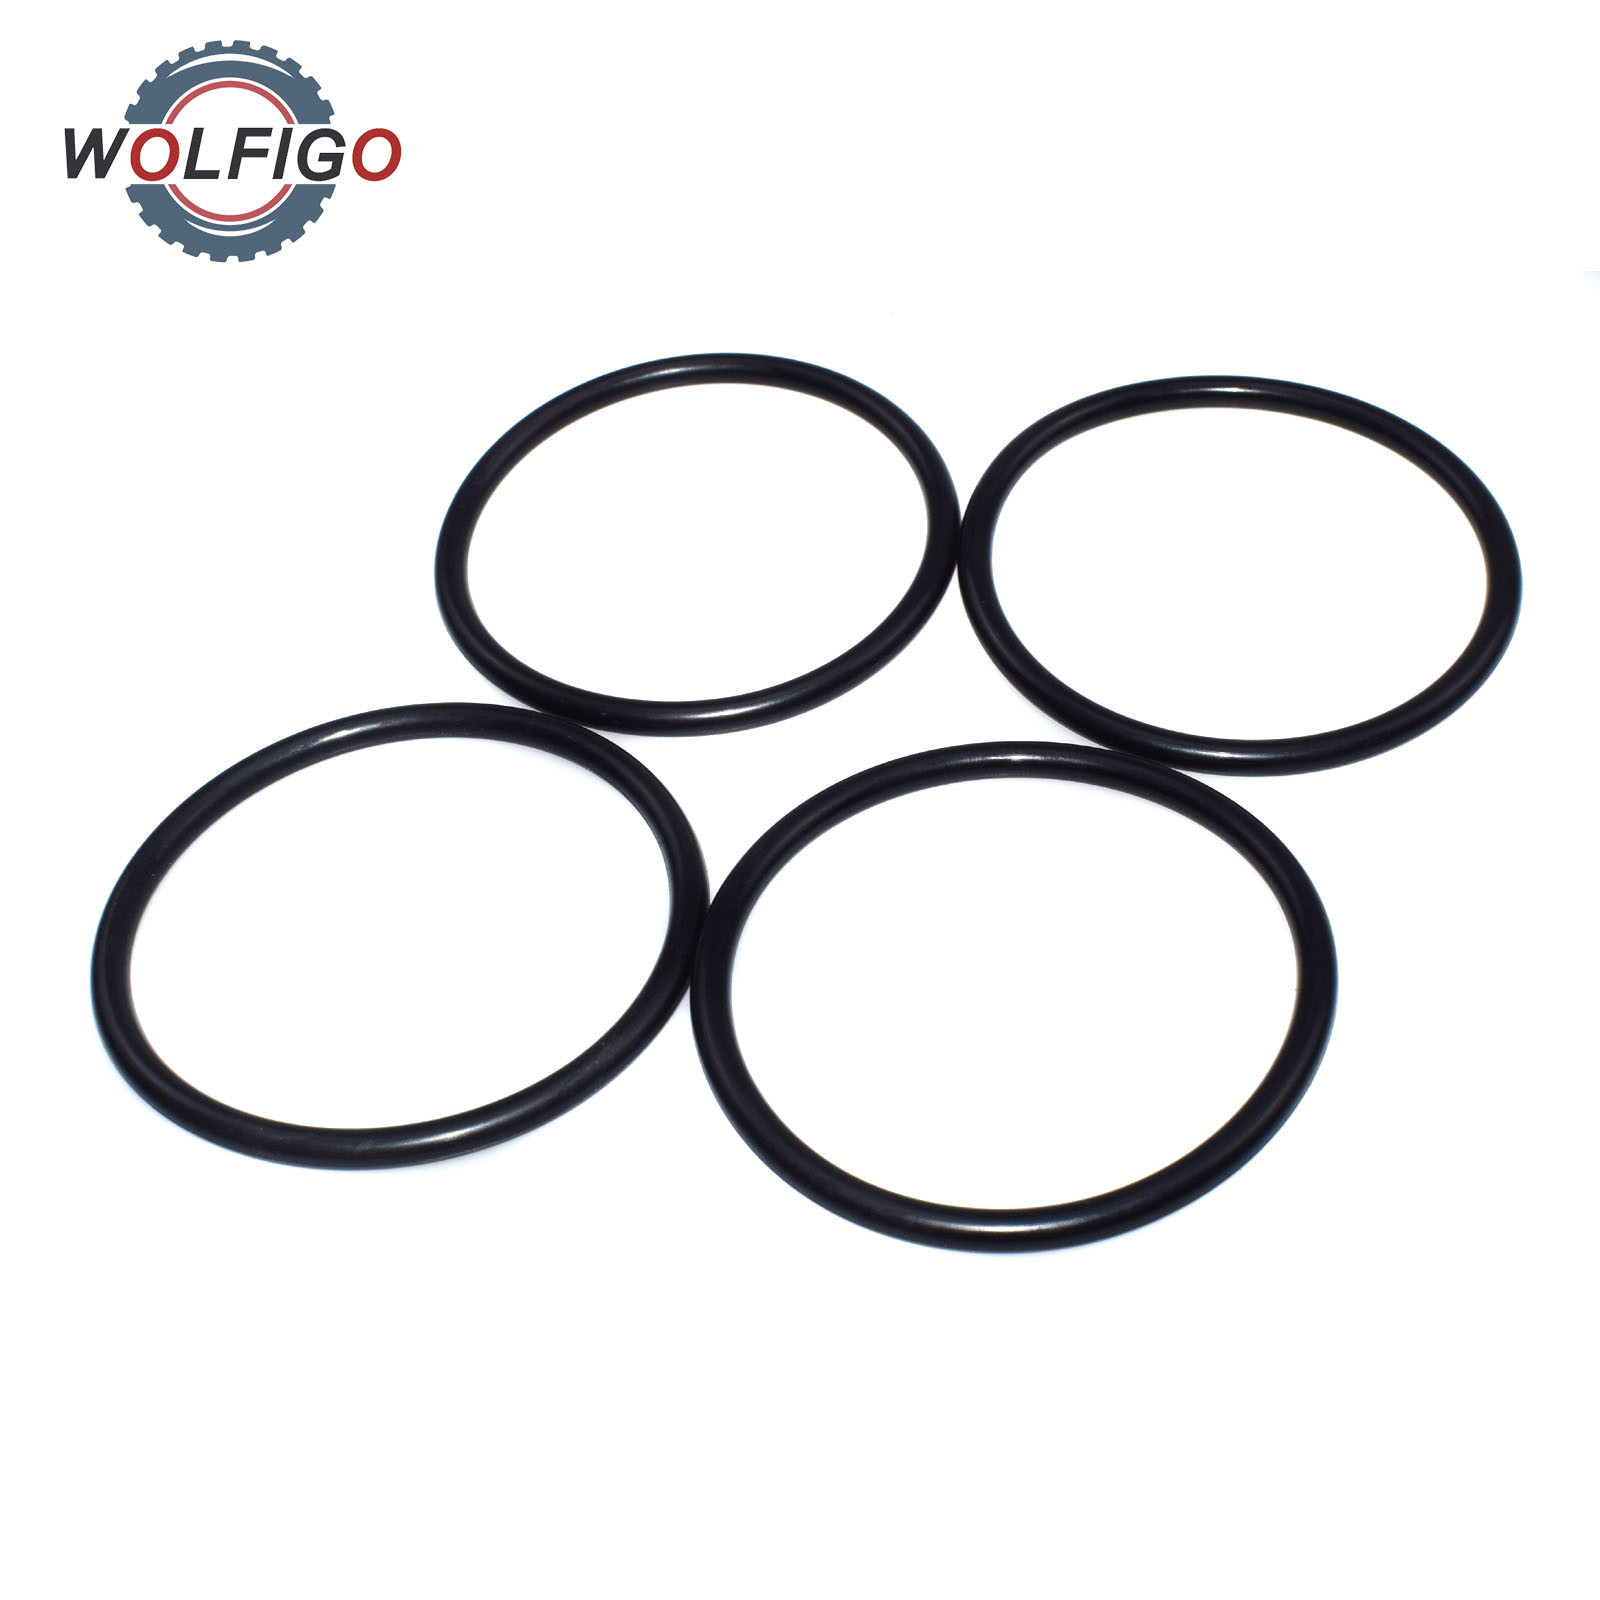 Wolfigo Engine Water Pump O Ring Seal Gasket